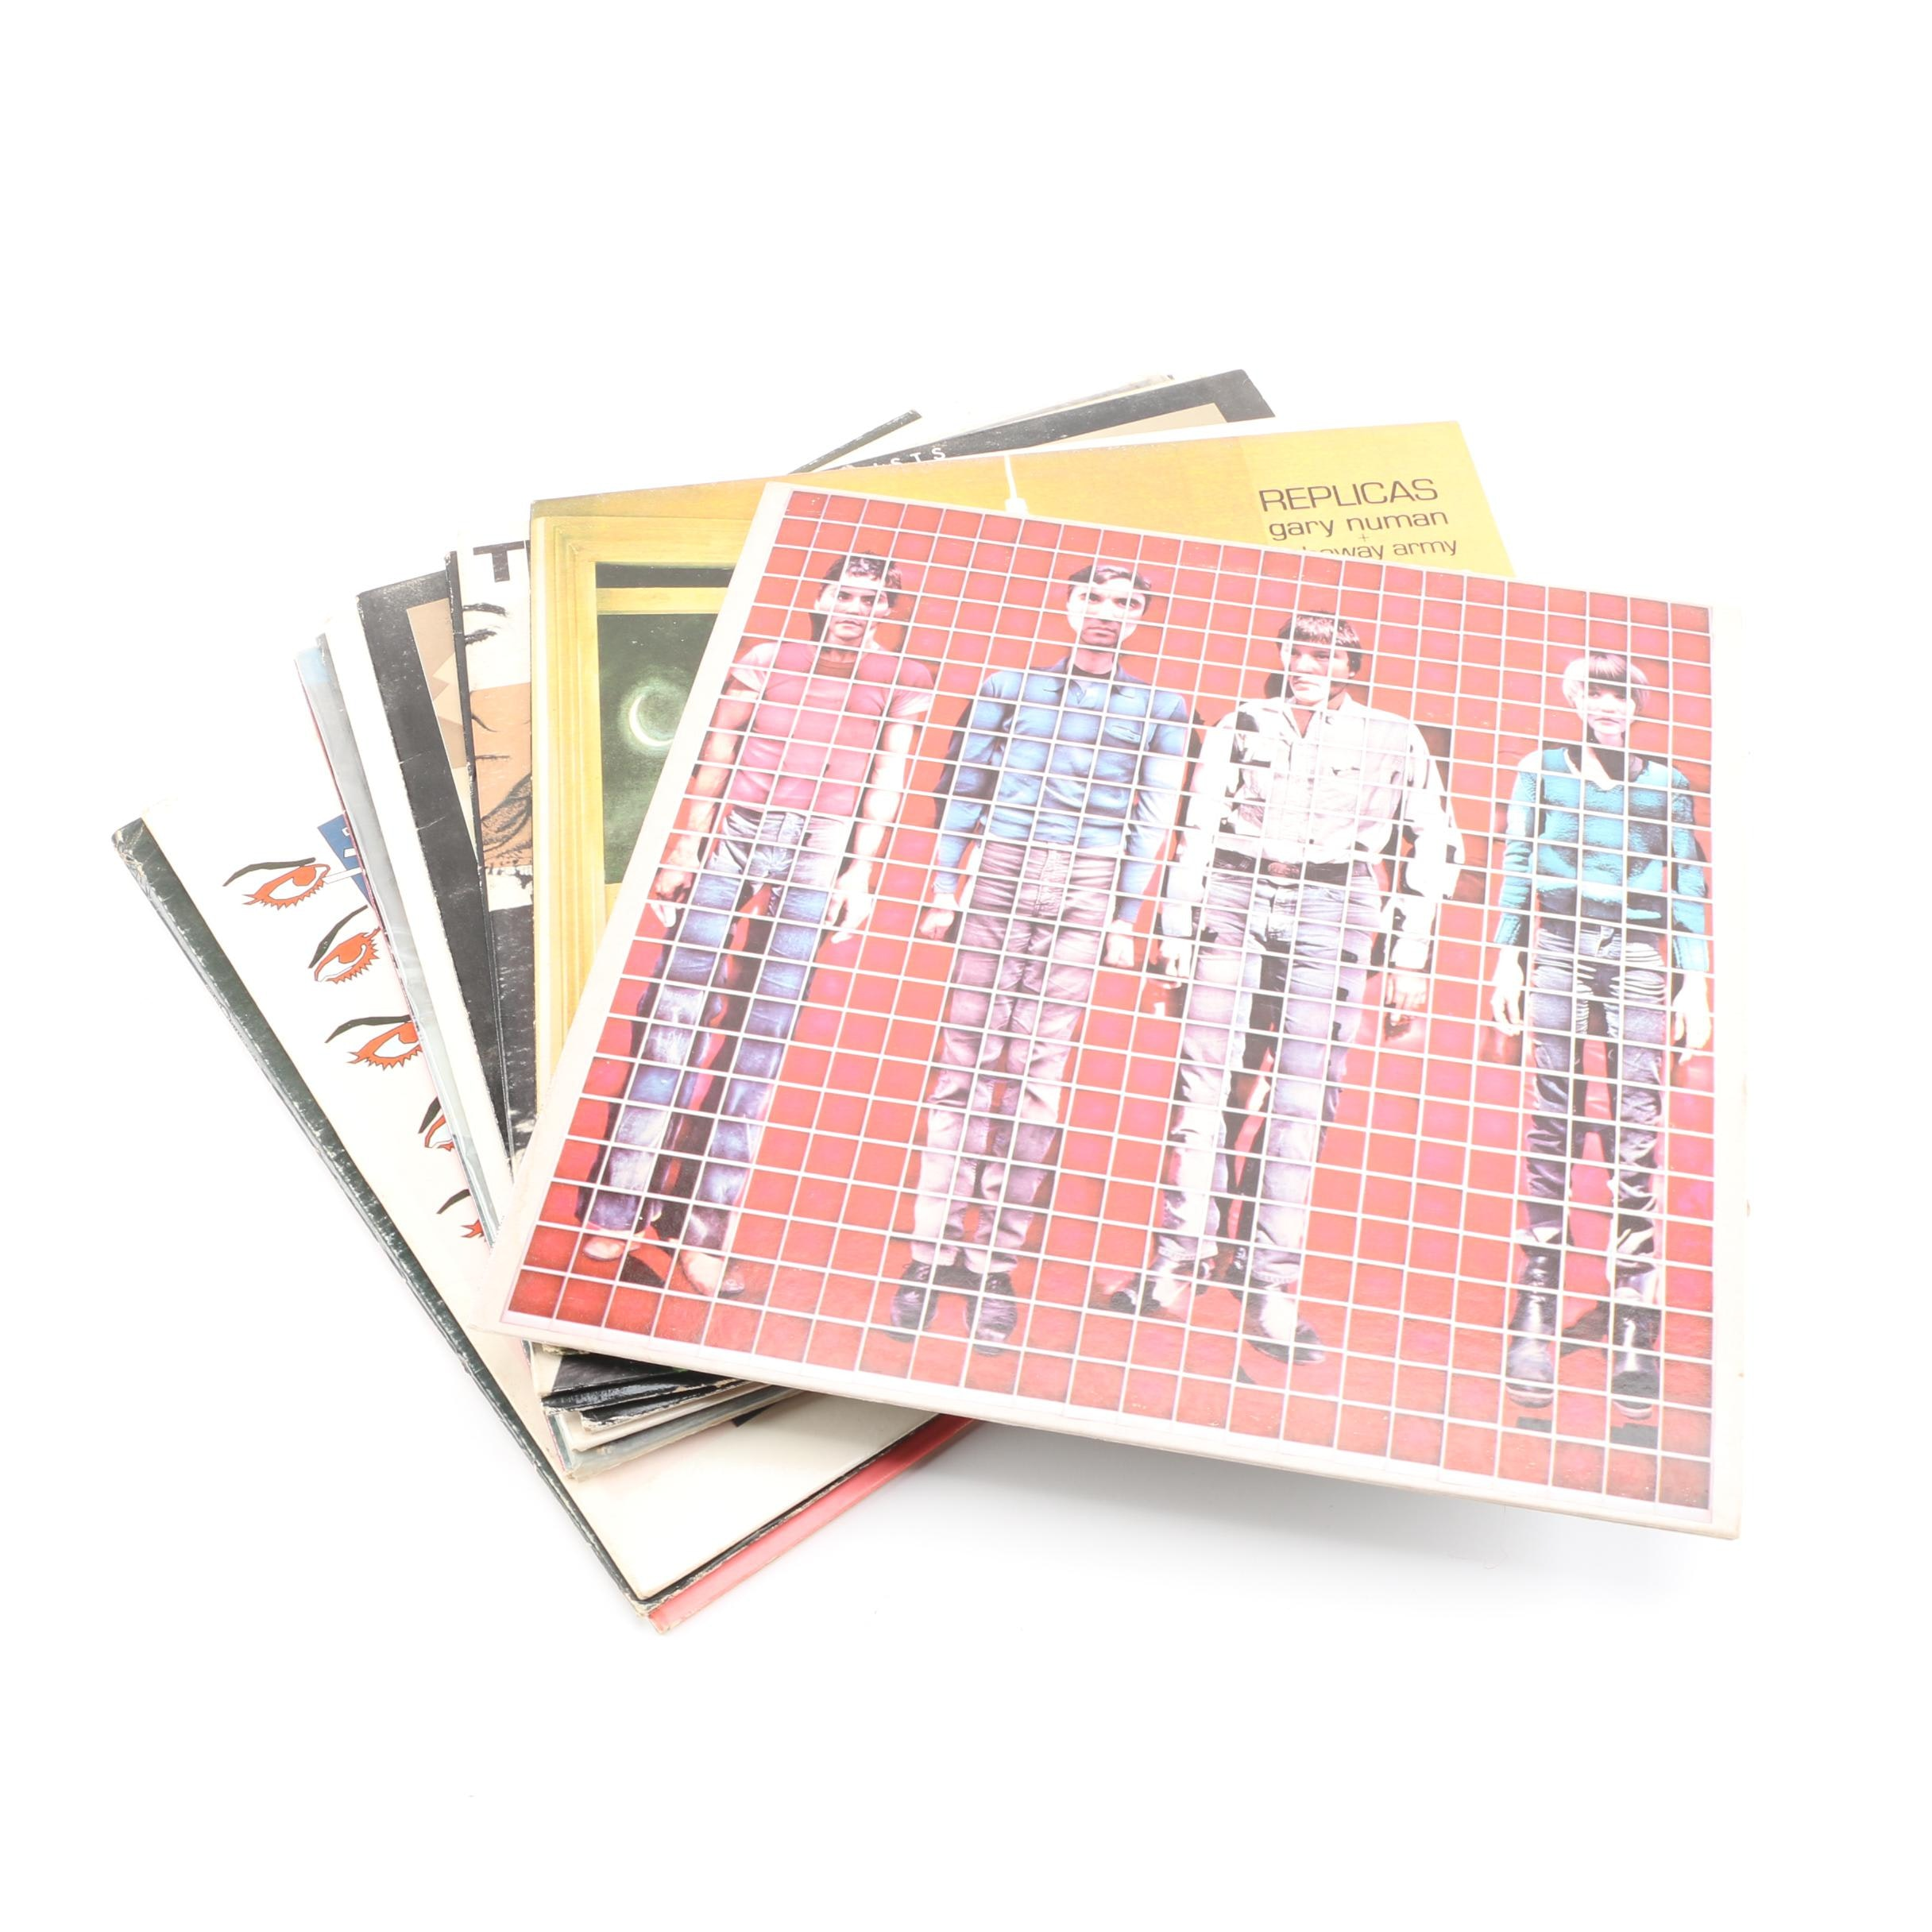 Talking Heads, The Sex Pistols and Other Assorted Records